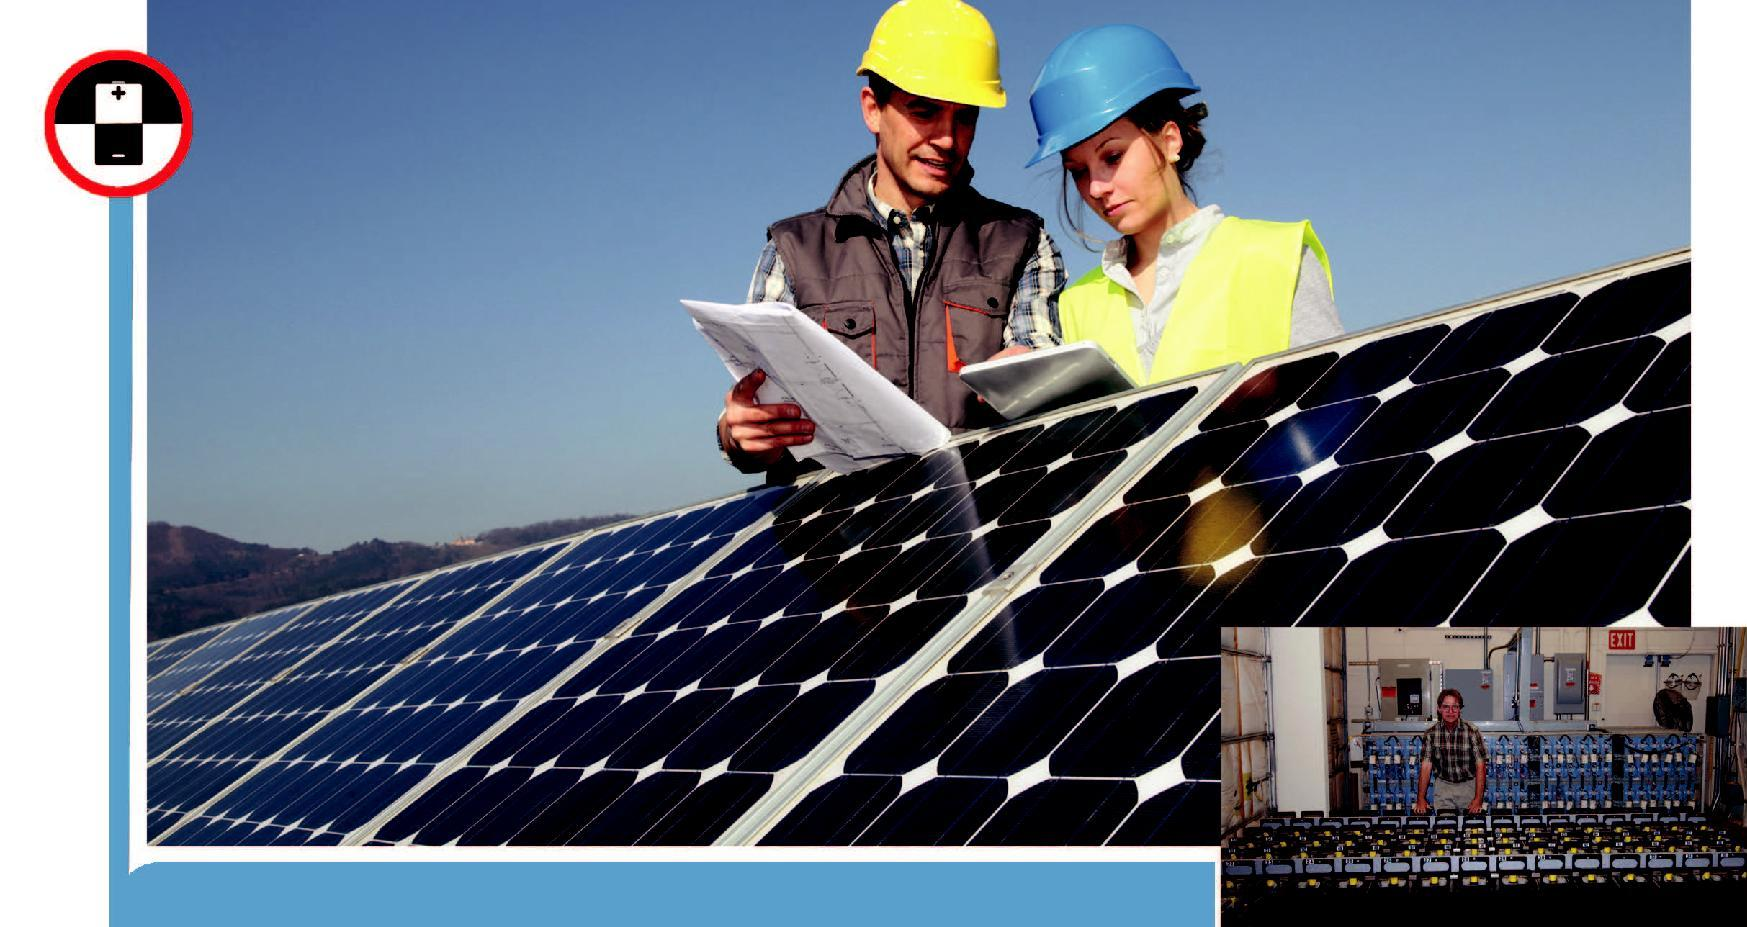 Solar Panel Installation Technician: The individual at work checks the installation site,understands the layout requirement as per design, assesses precautionary measures to be taken, installs the solar panel as per customer's requirement and ensures effe